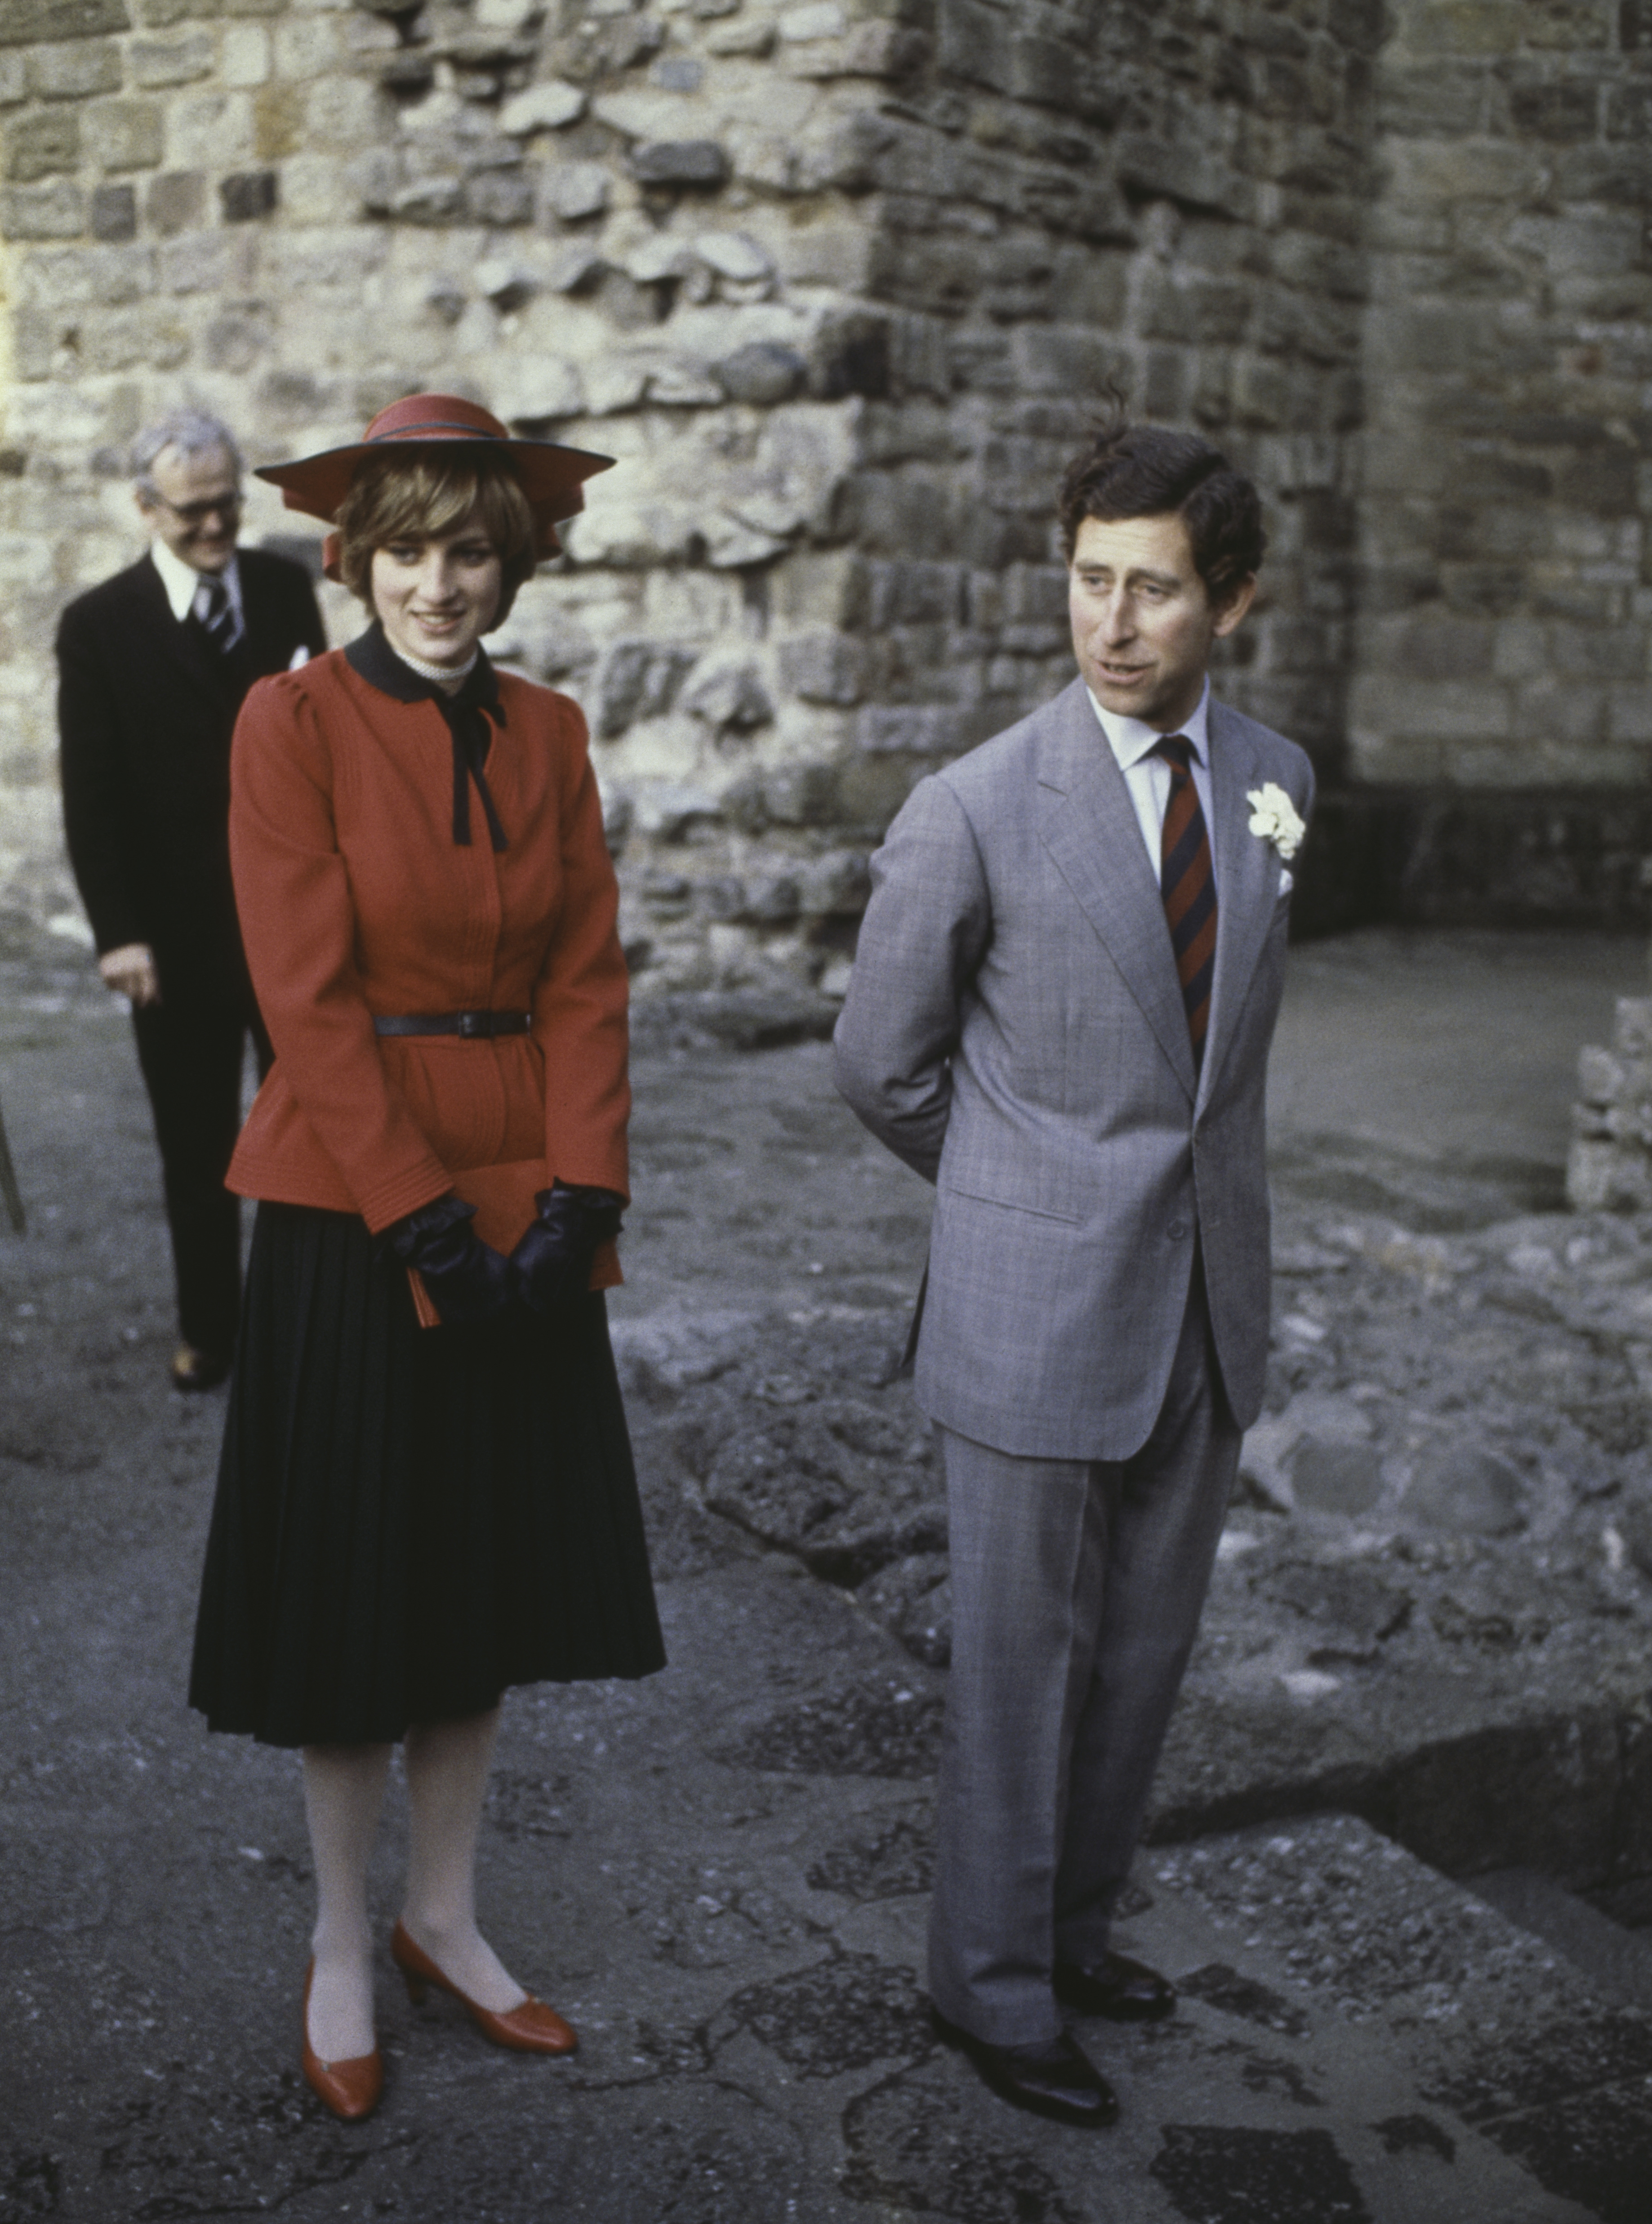 Prince Charles Prince Charles and the Princess of Wales at Caernarvon Castle during an official tour of Wales, 27th October 1981. (Photo by Hulton Archive/Getty Images)